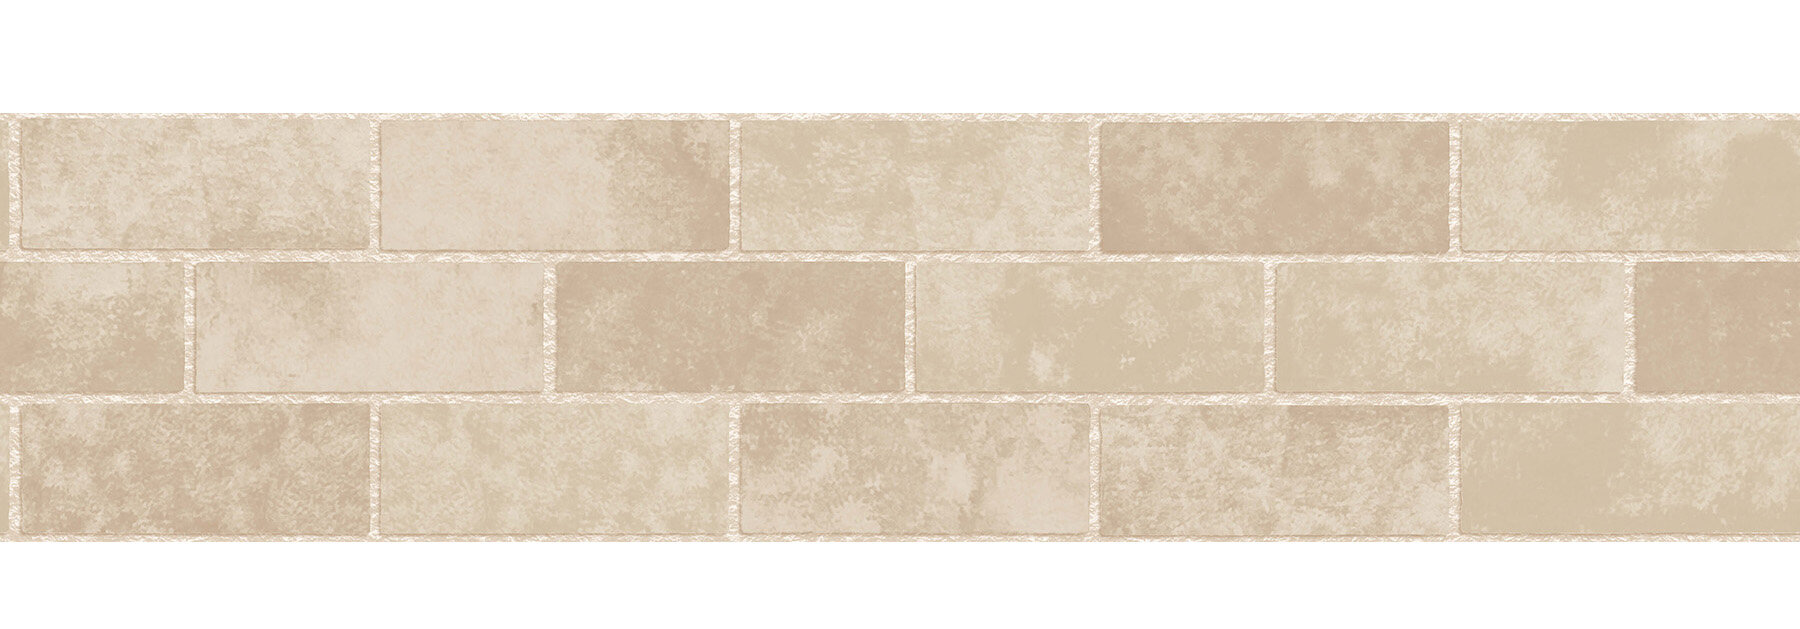 "WallPops! 16.3' X 5.9"" Stone Tile Peel And Stick Border"